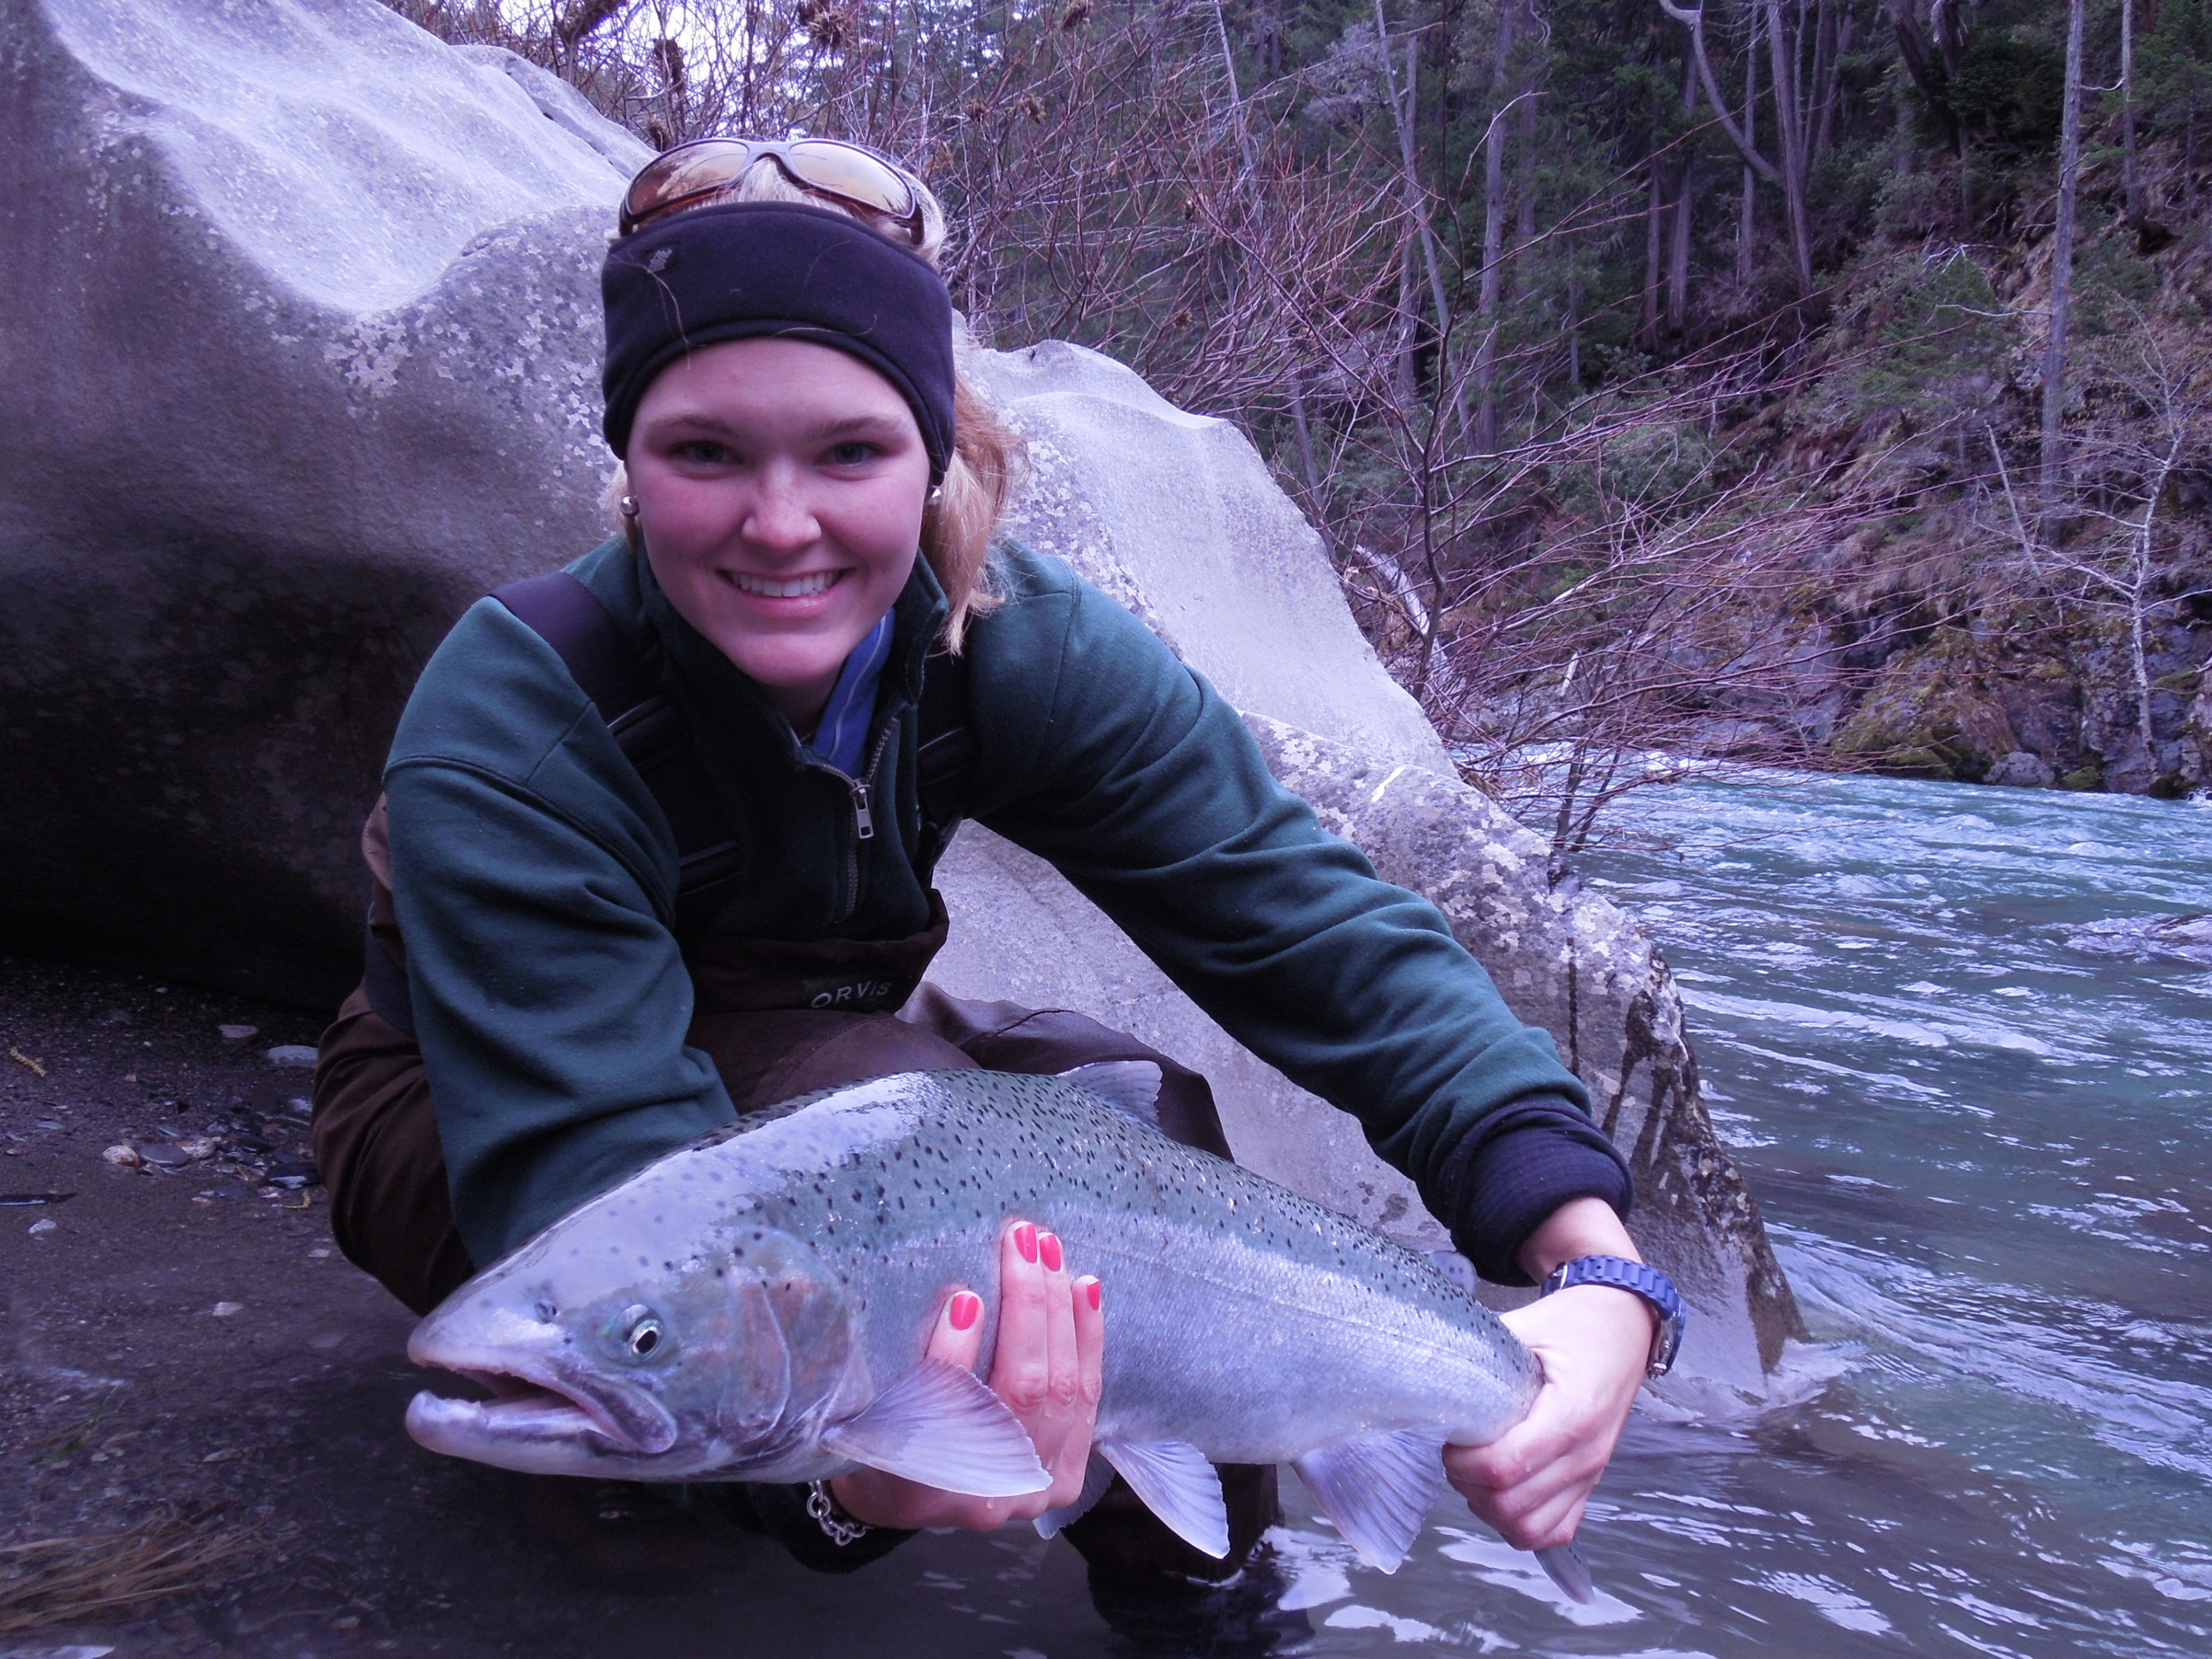 Kelsey and her first steelhead, not a bad grip with hot pink polish.